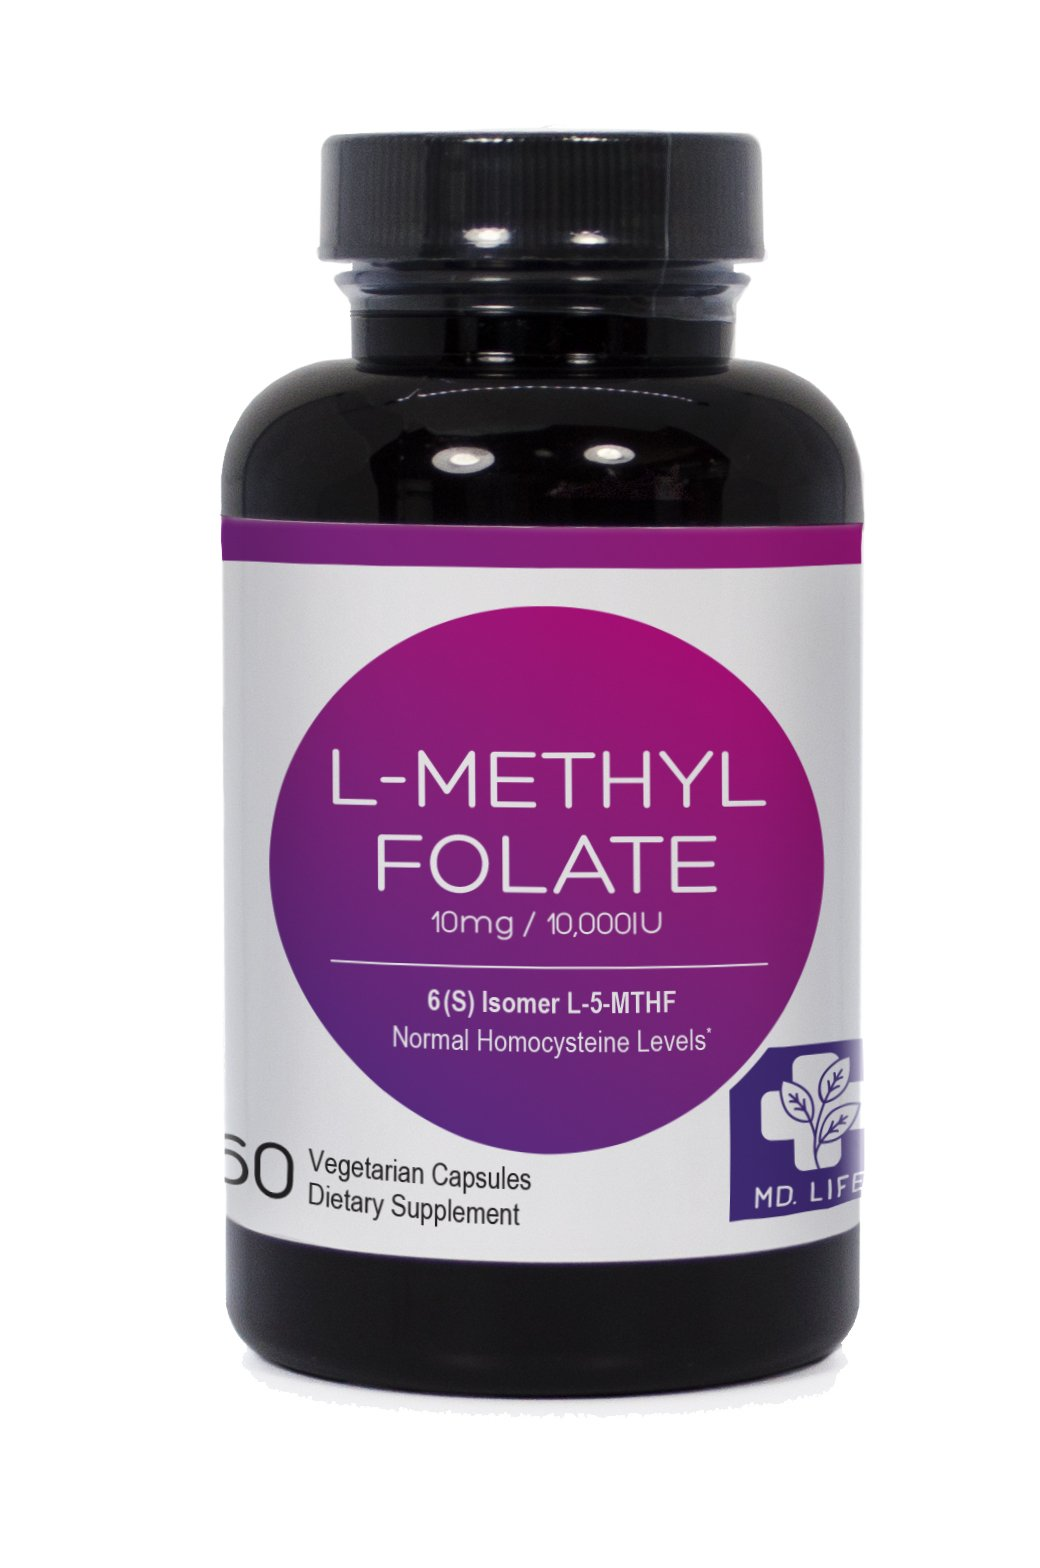 Save $$ MD.LIFE L-Methyl Folate|5-MTHF| 10 mg| 60 Capsules Metabolically Active Form of Folic Acid| Scientifically Formulated B Vitamin Blend with B12, B9, Niacin, B1, B2 and B6| Compare to Methyl Pro by MD.LIFE